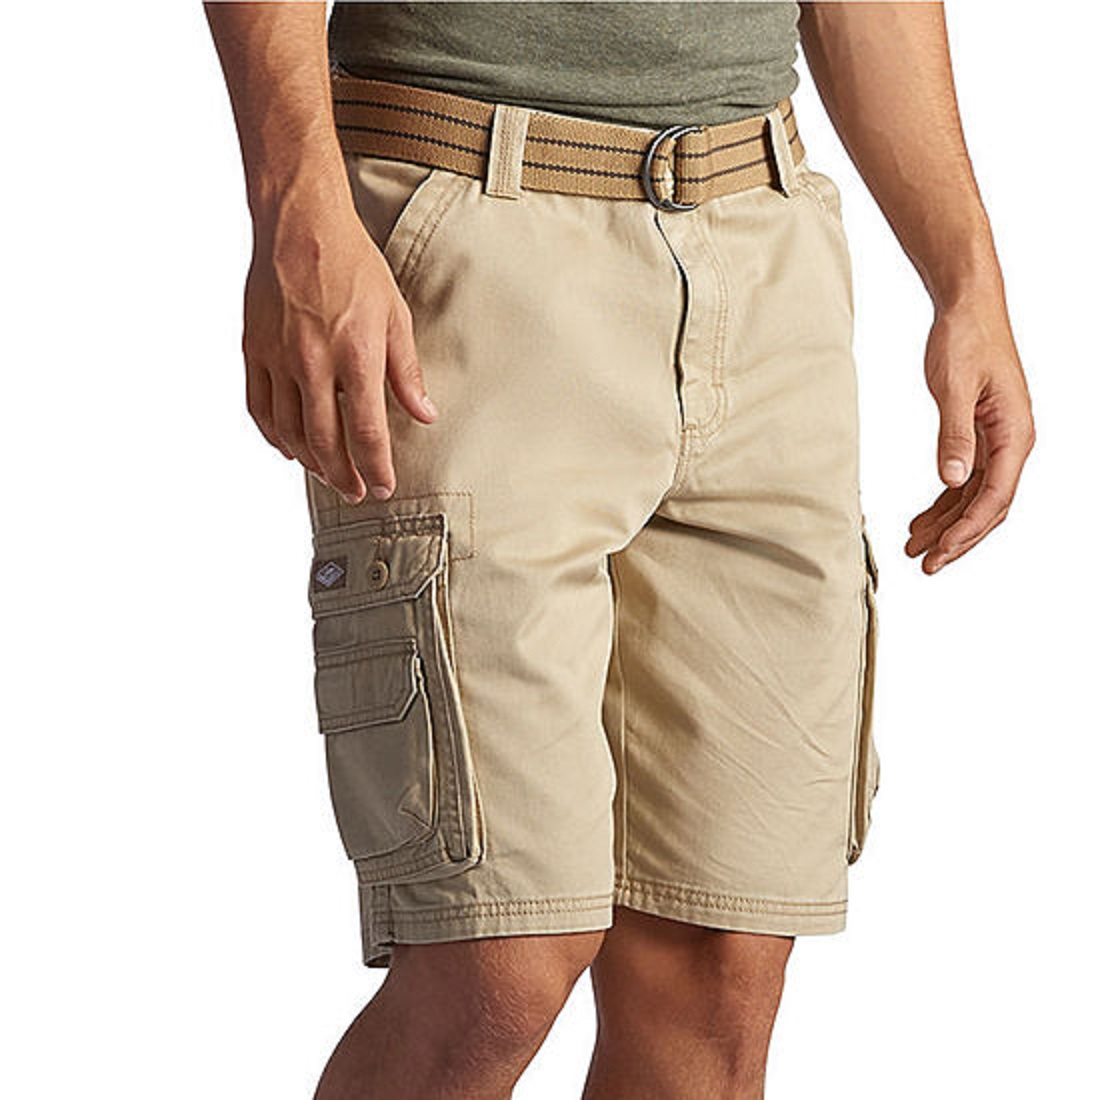 timeless design reliable reputation complete in specifications Men's Shorts | Khaki & Cargo Shorts for Men | JCPenney